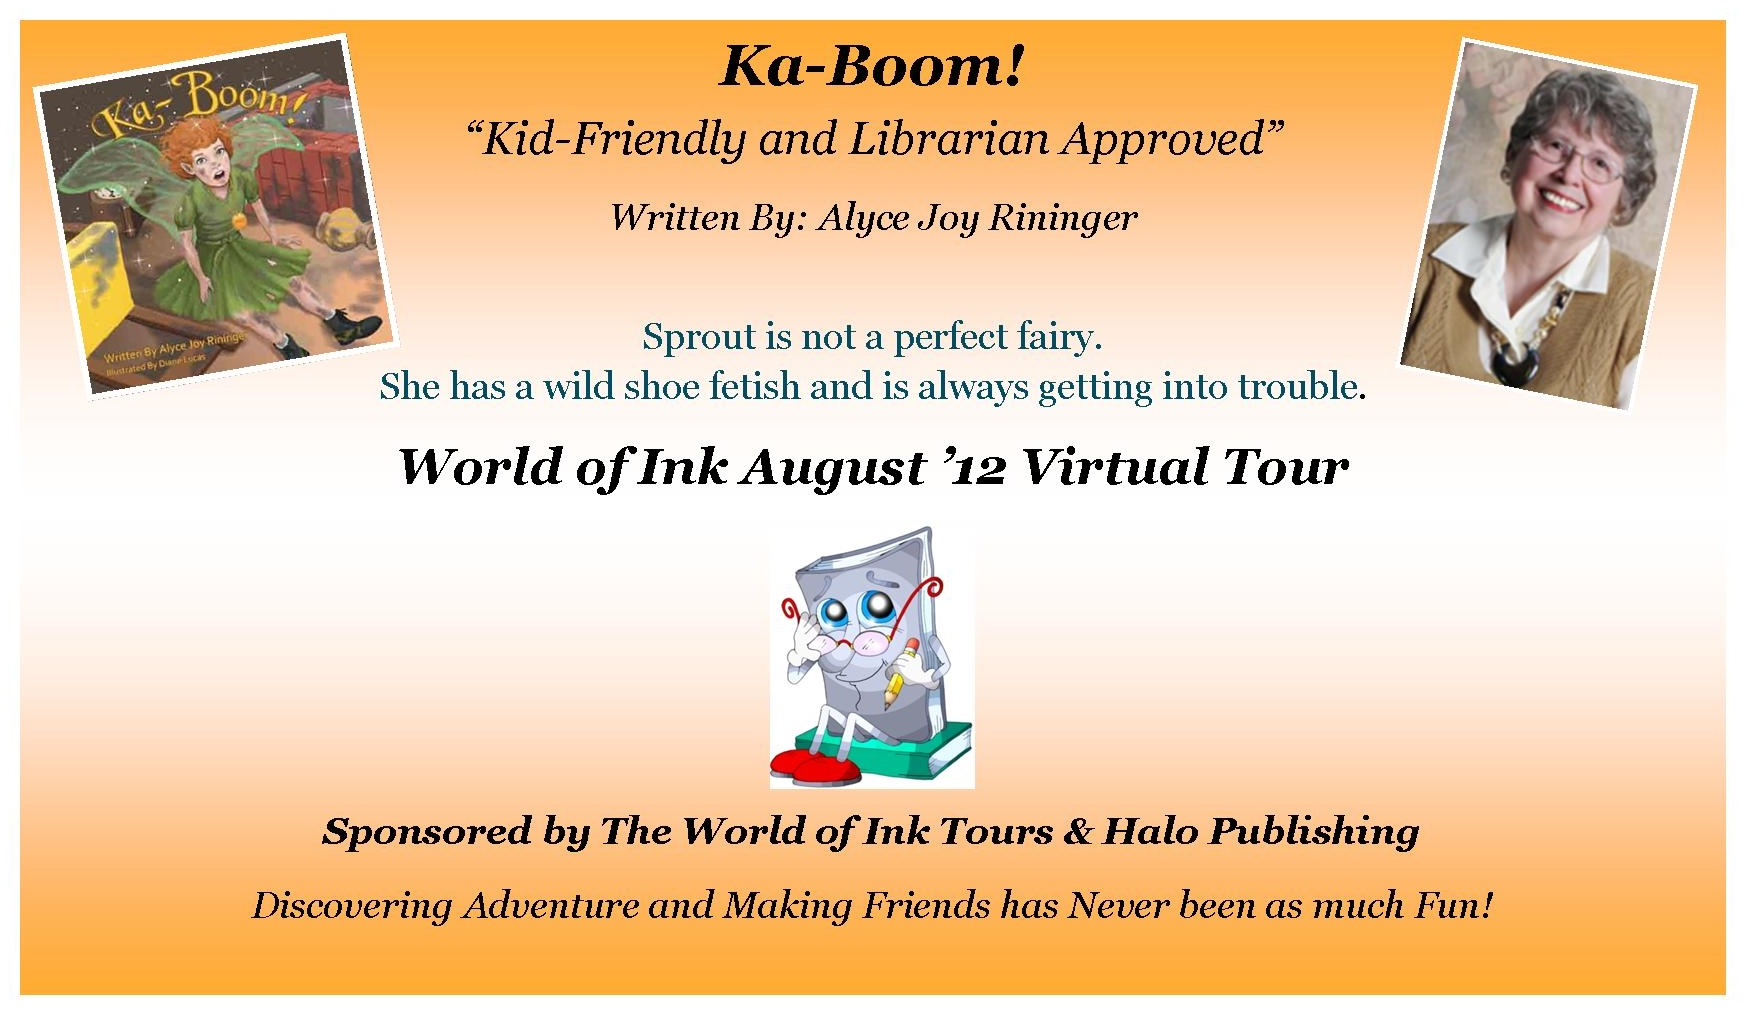 WOI Banner for Ka-Boom by Alyce Joy